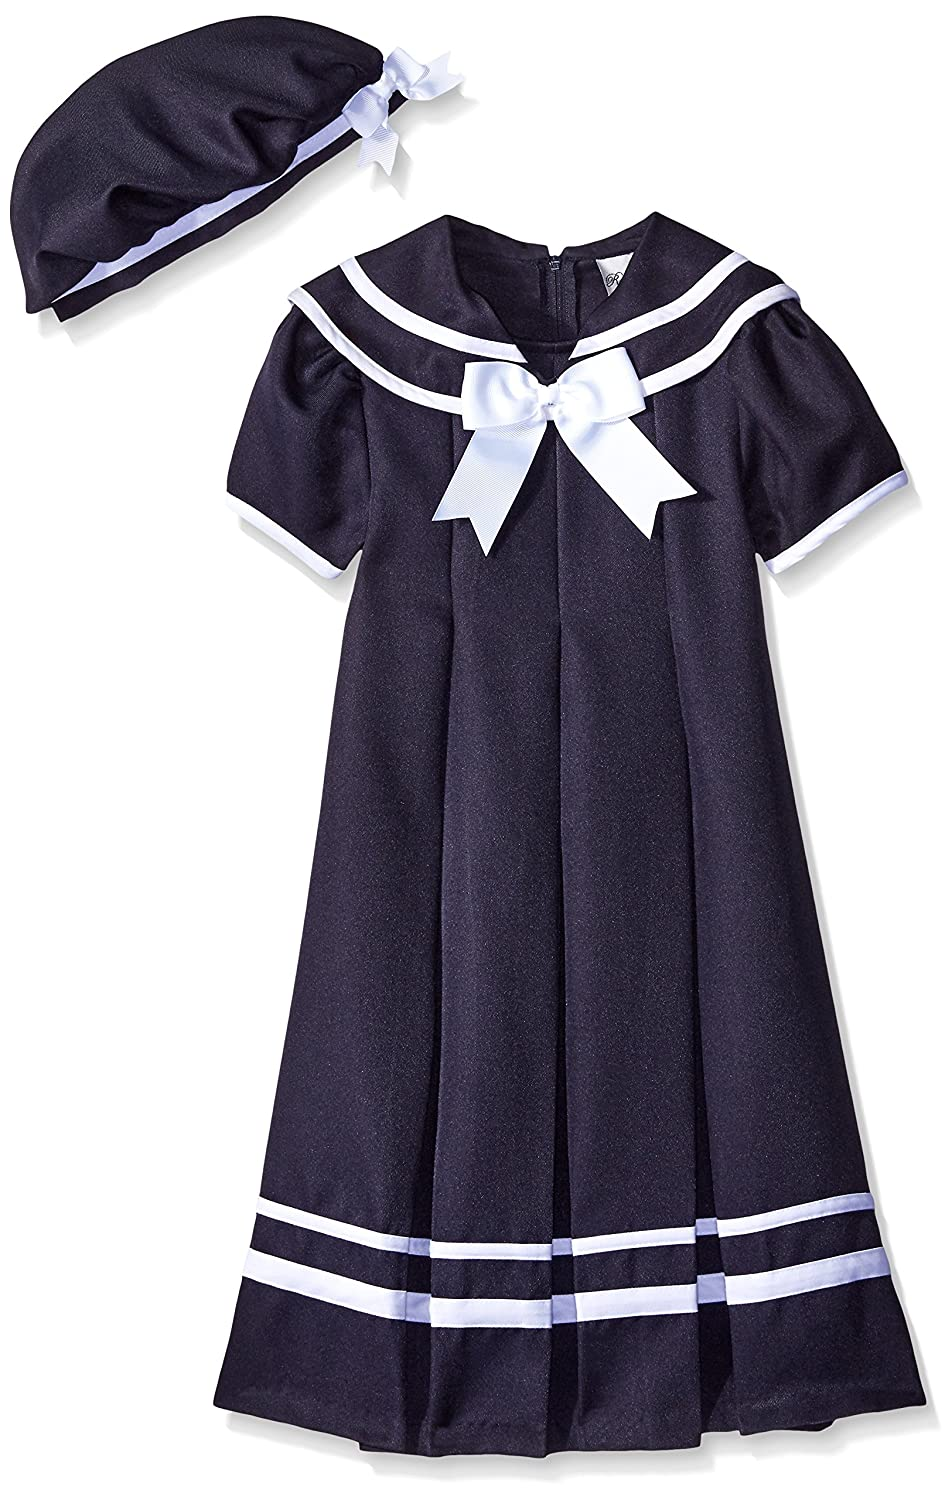 1960s Inspired Fashion: Recreate the Look Rare Editions Big Girls Navy Nautical Dress $29.99 AT vintagedancer.com